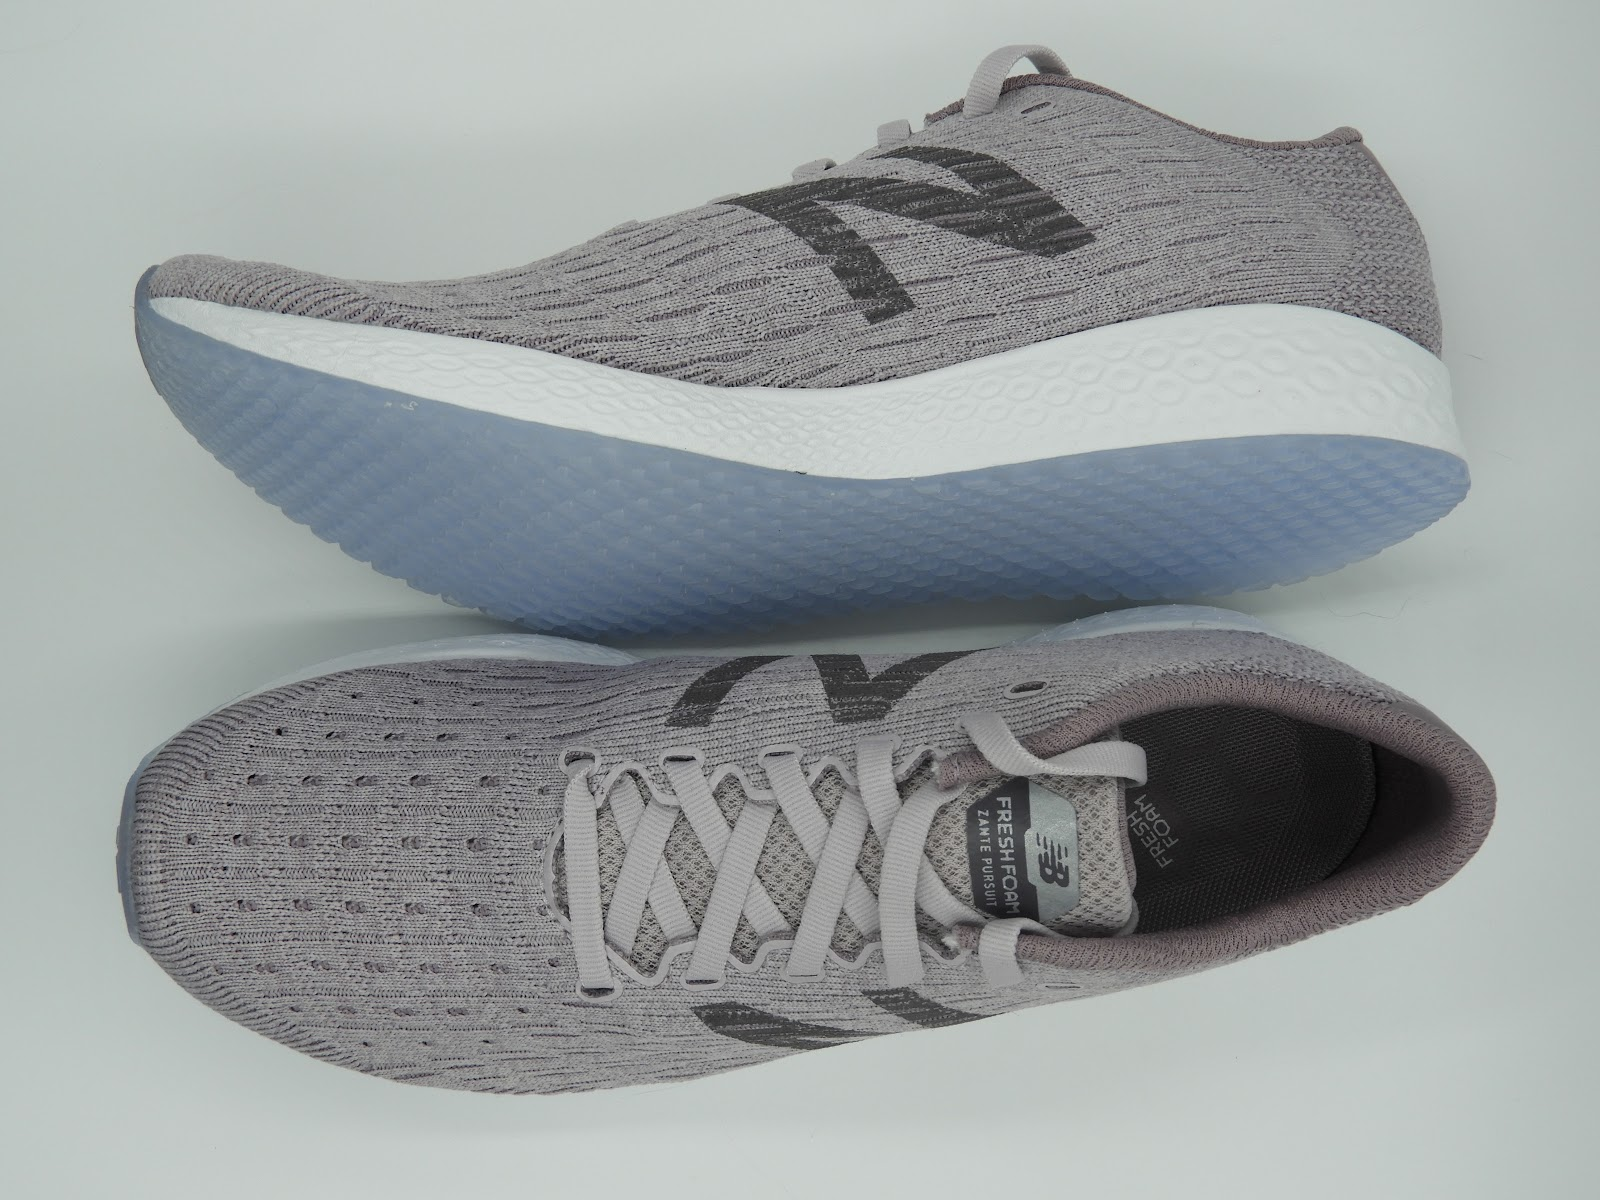 Road Trail Run: New Balance Zante Pursuit Review